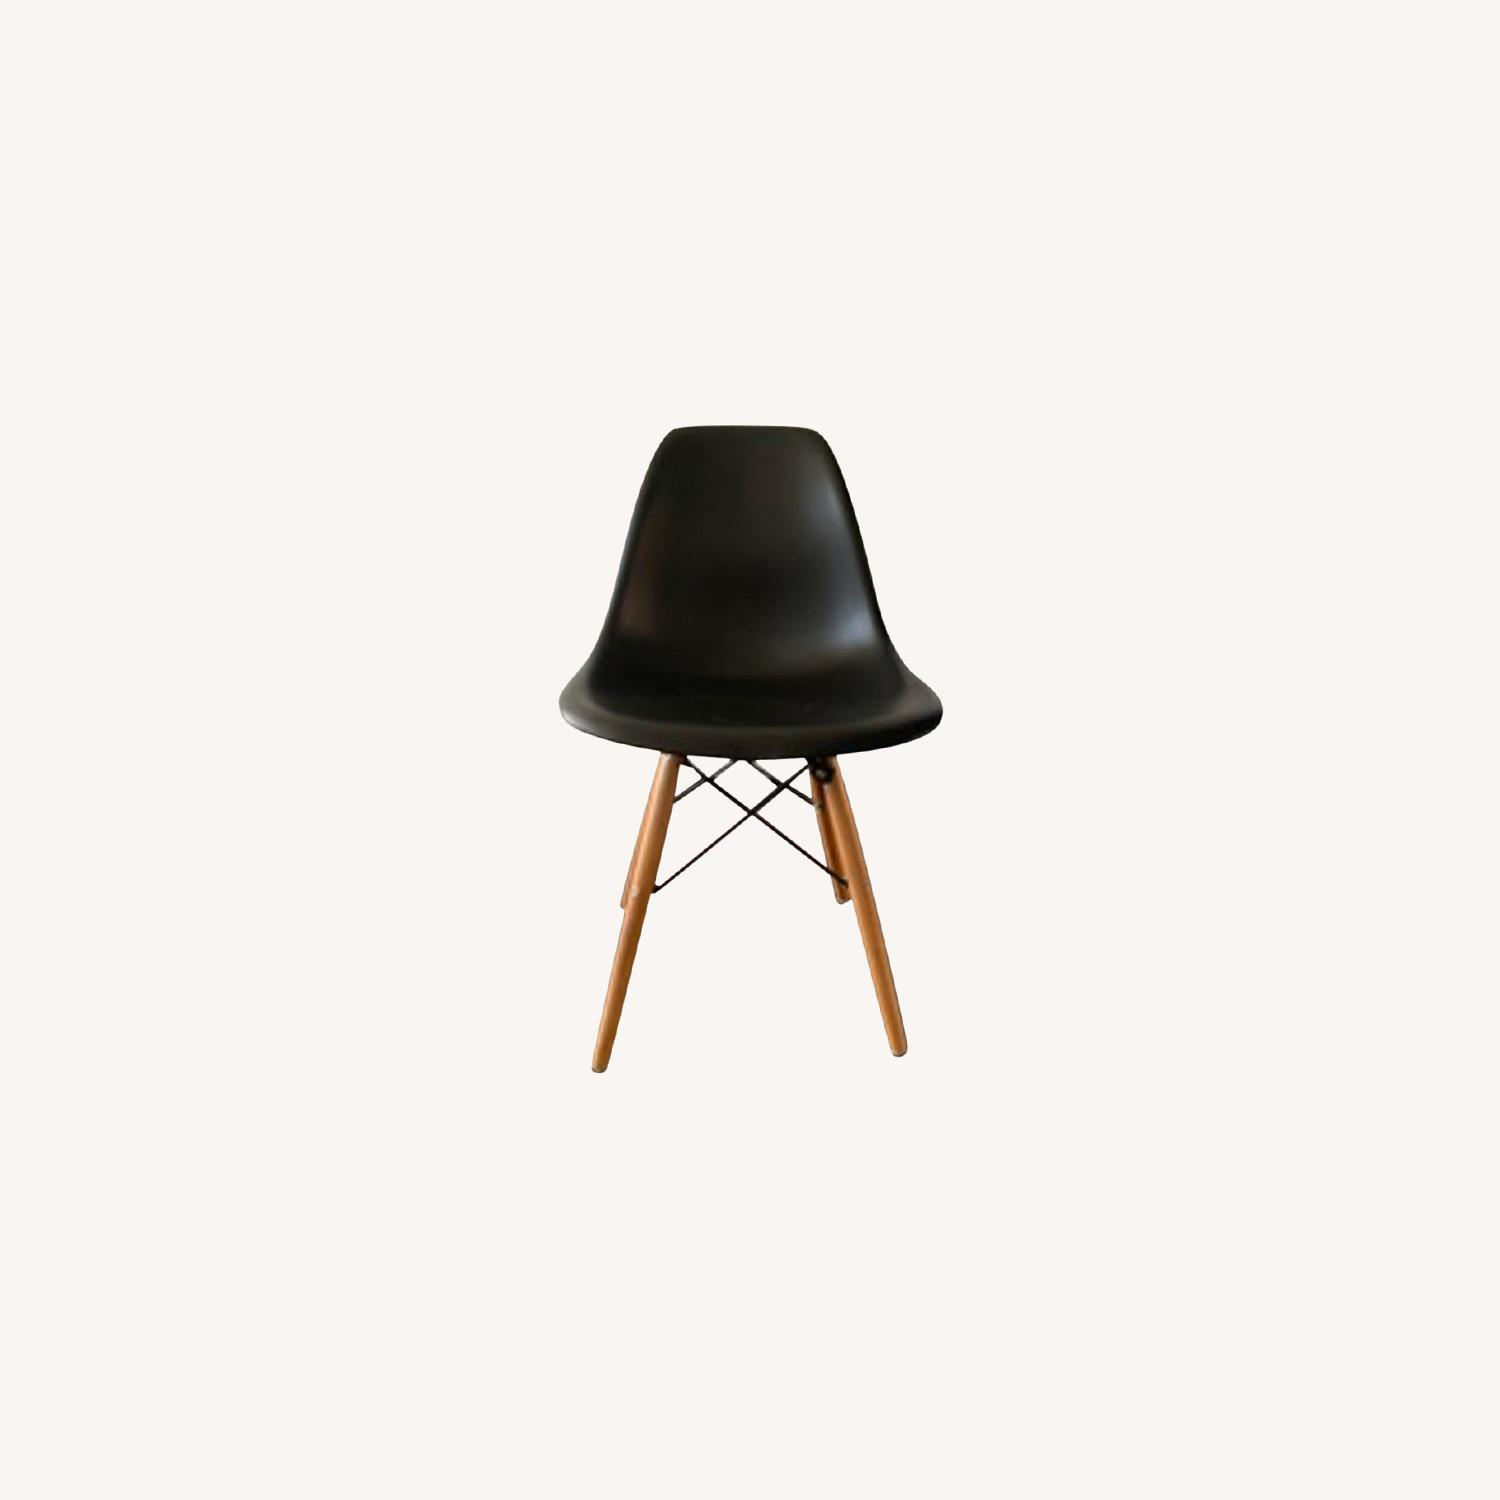 Eames DSW Molded Plastic Side Chairs - Replica x 5 - image-3